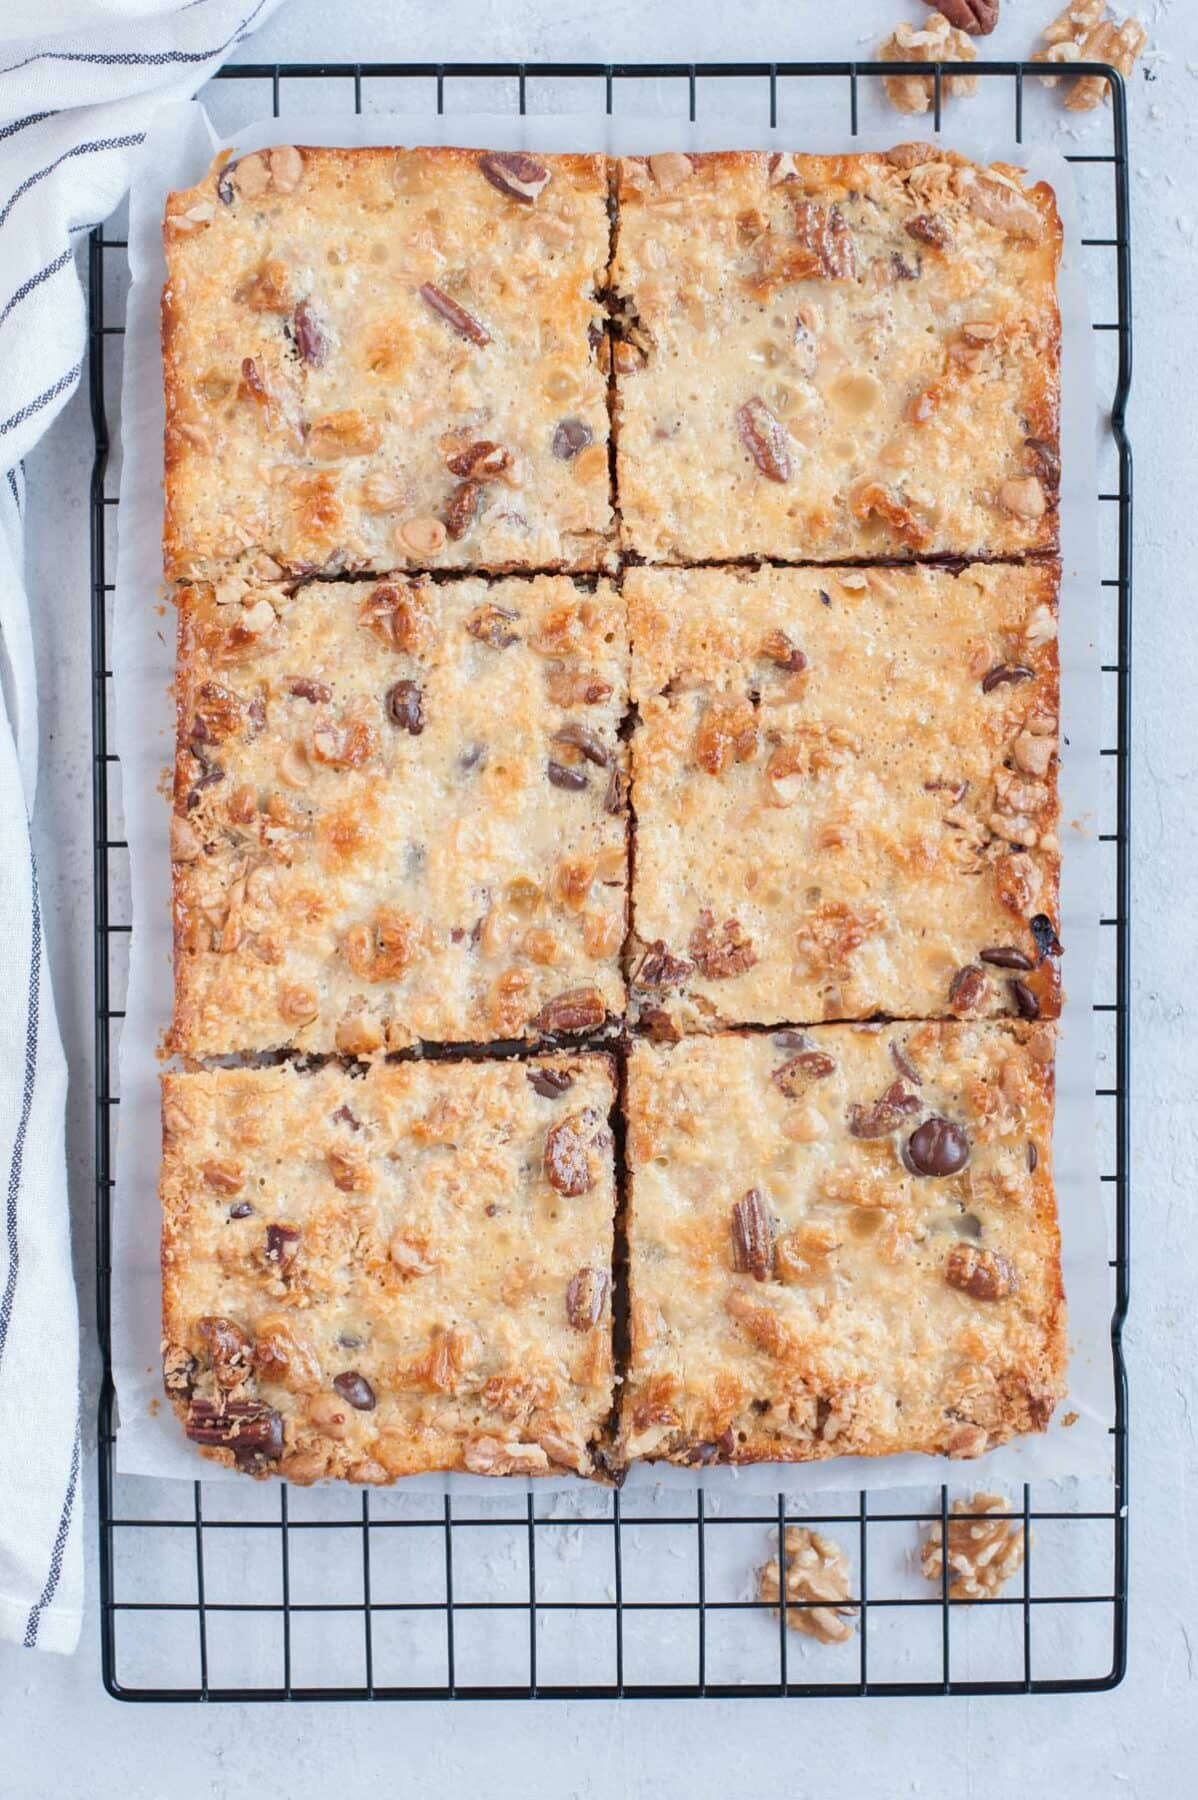 7-layer magic bars divided into squares on a cooling rack.